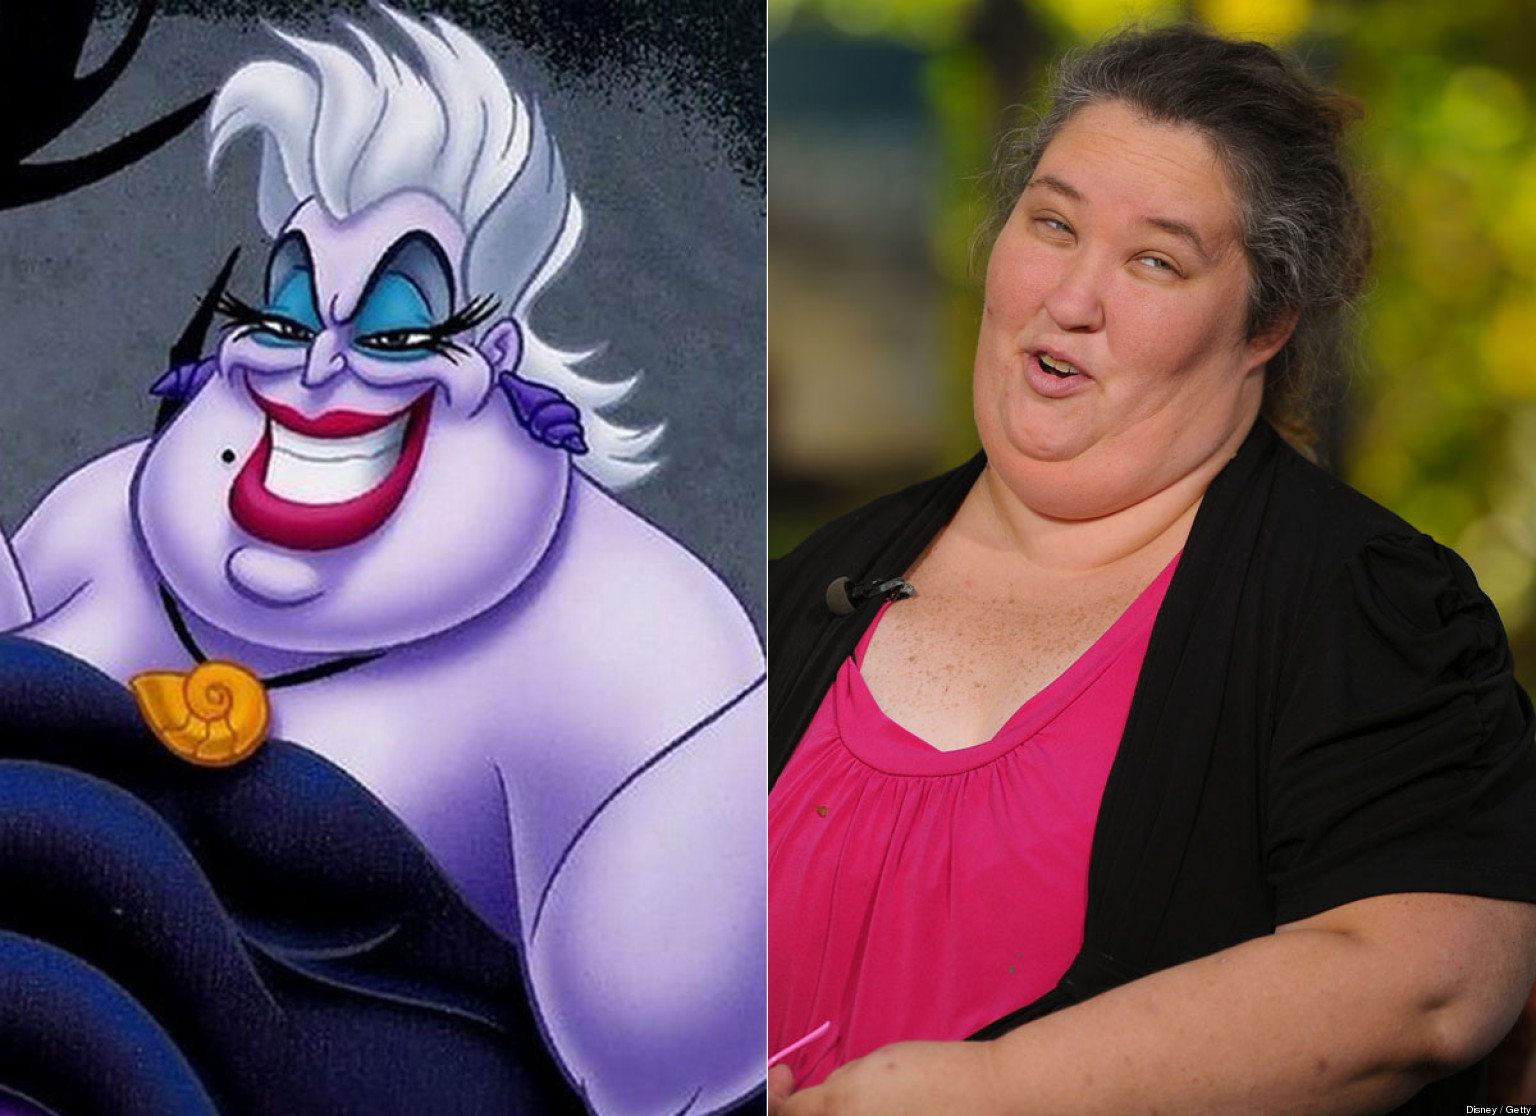 Celebrities Who Look Like Disney Characters (PHOTOS)